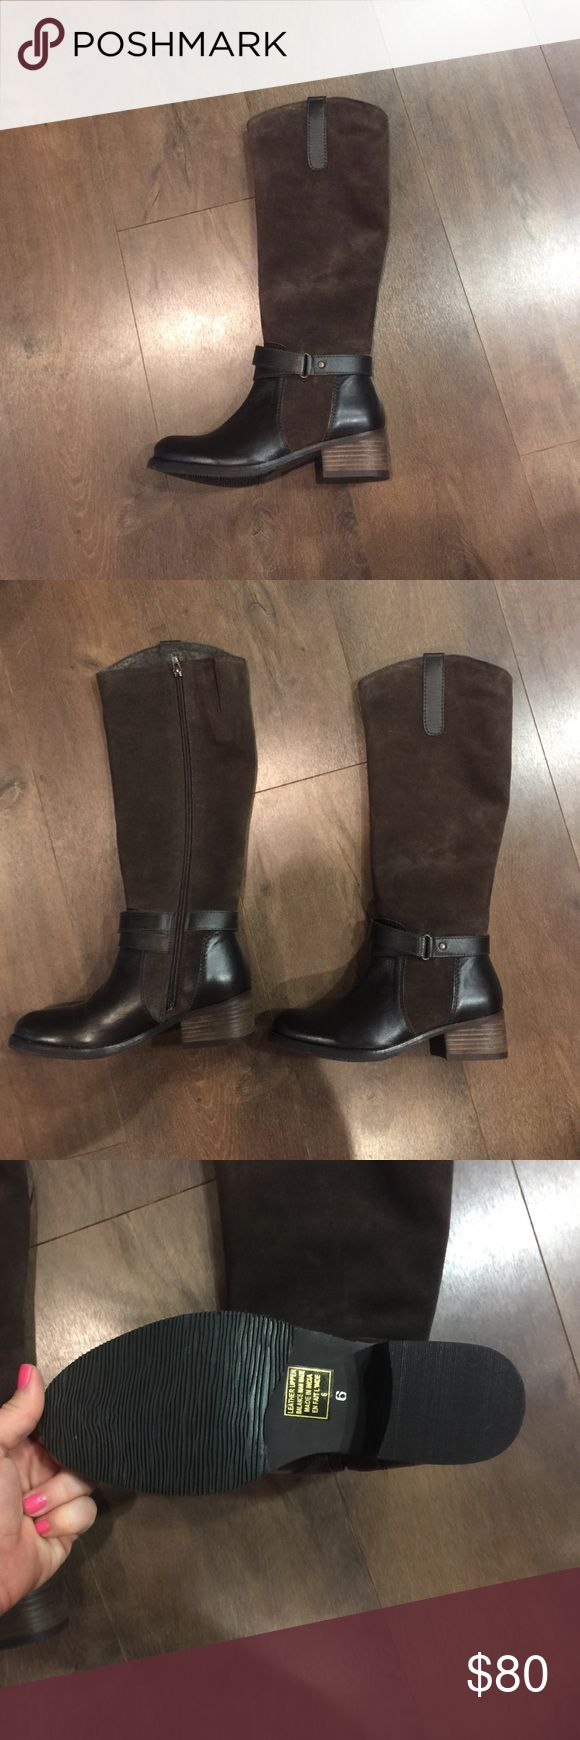 Cute Seychelles brown boots! NWOT! Size 6. Super cute brown Seychelles boots. Brown suede on the top of the boot. Nice rubber soles. Comfy and stylish! Size 6. NWOT Seychelles Shoes Heeled Boots